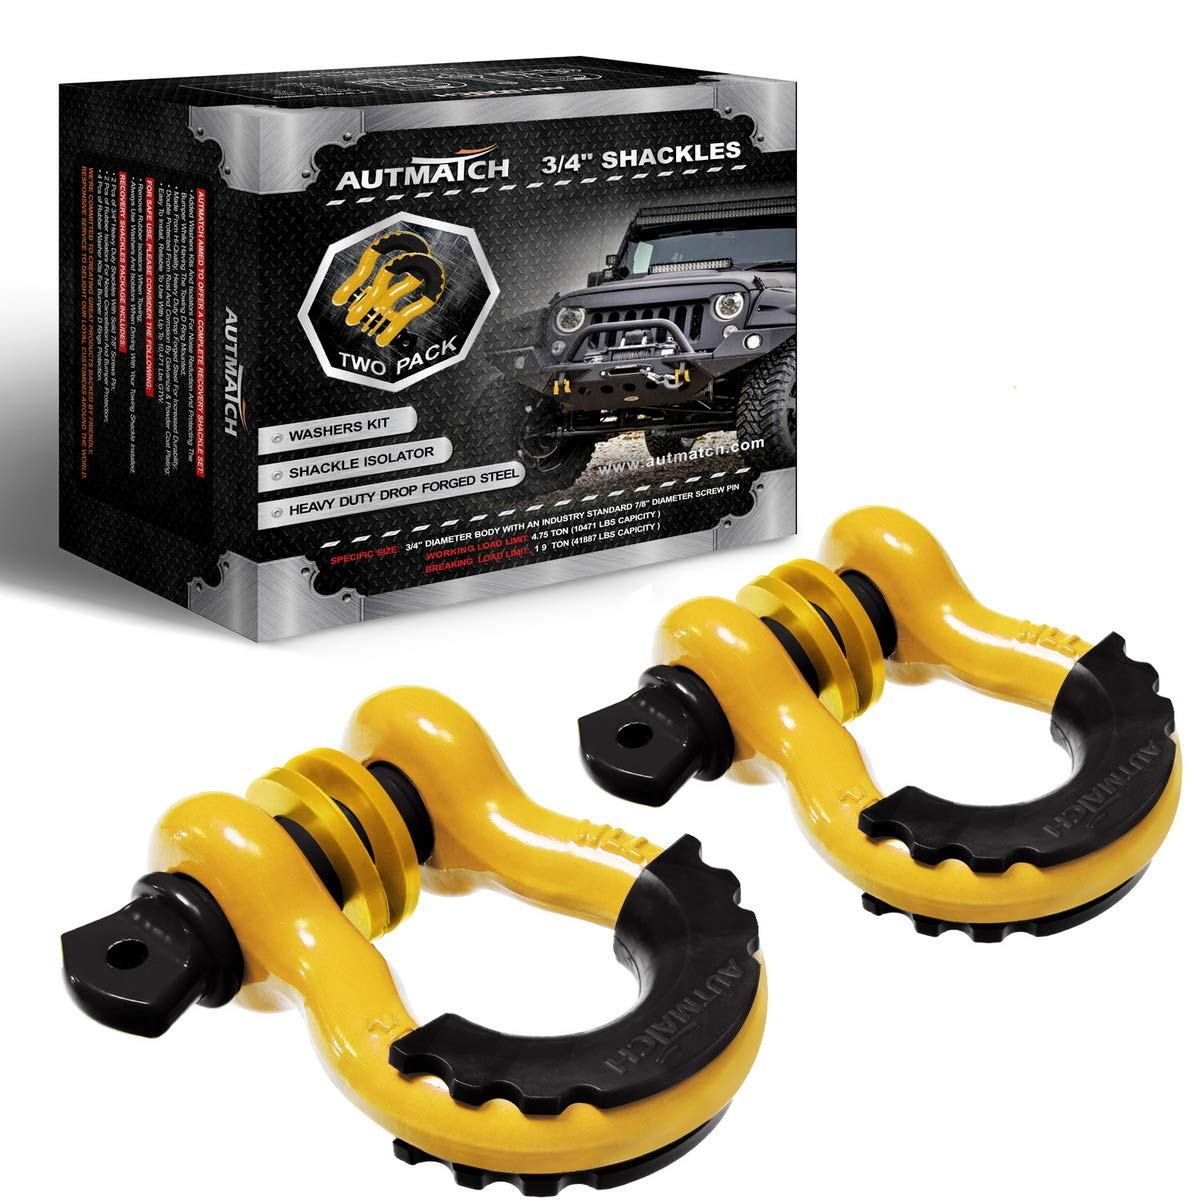 AUTMATCH Shackles Strength Isolator Recovery